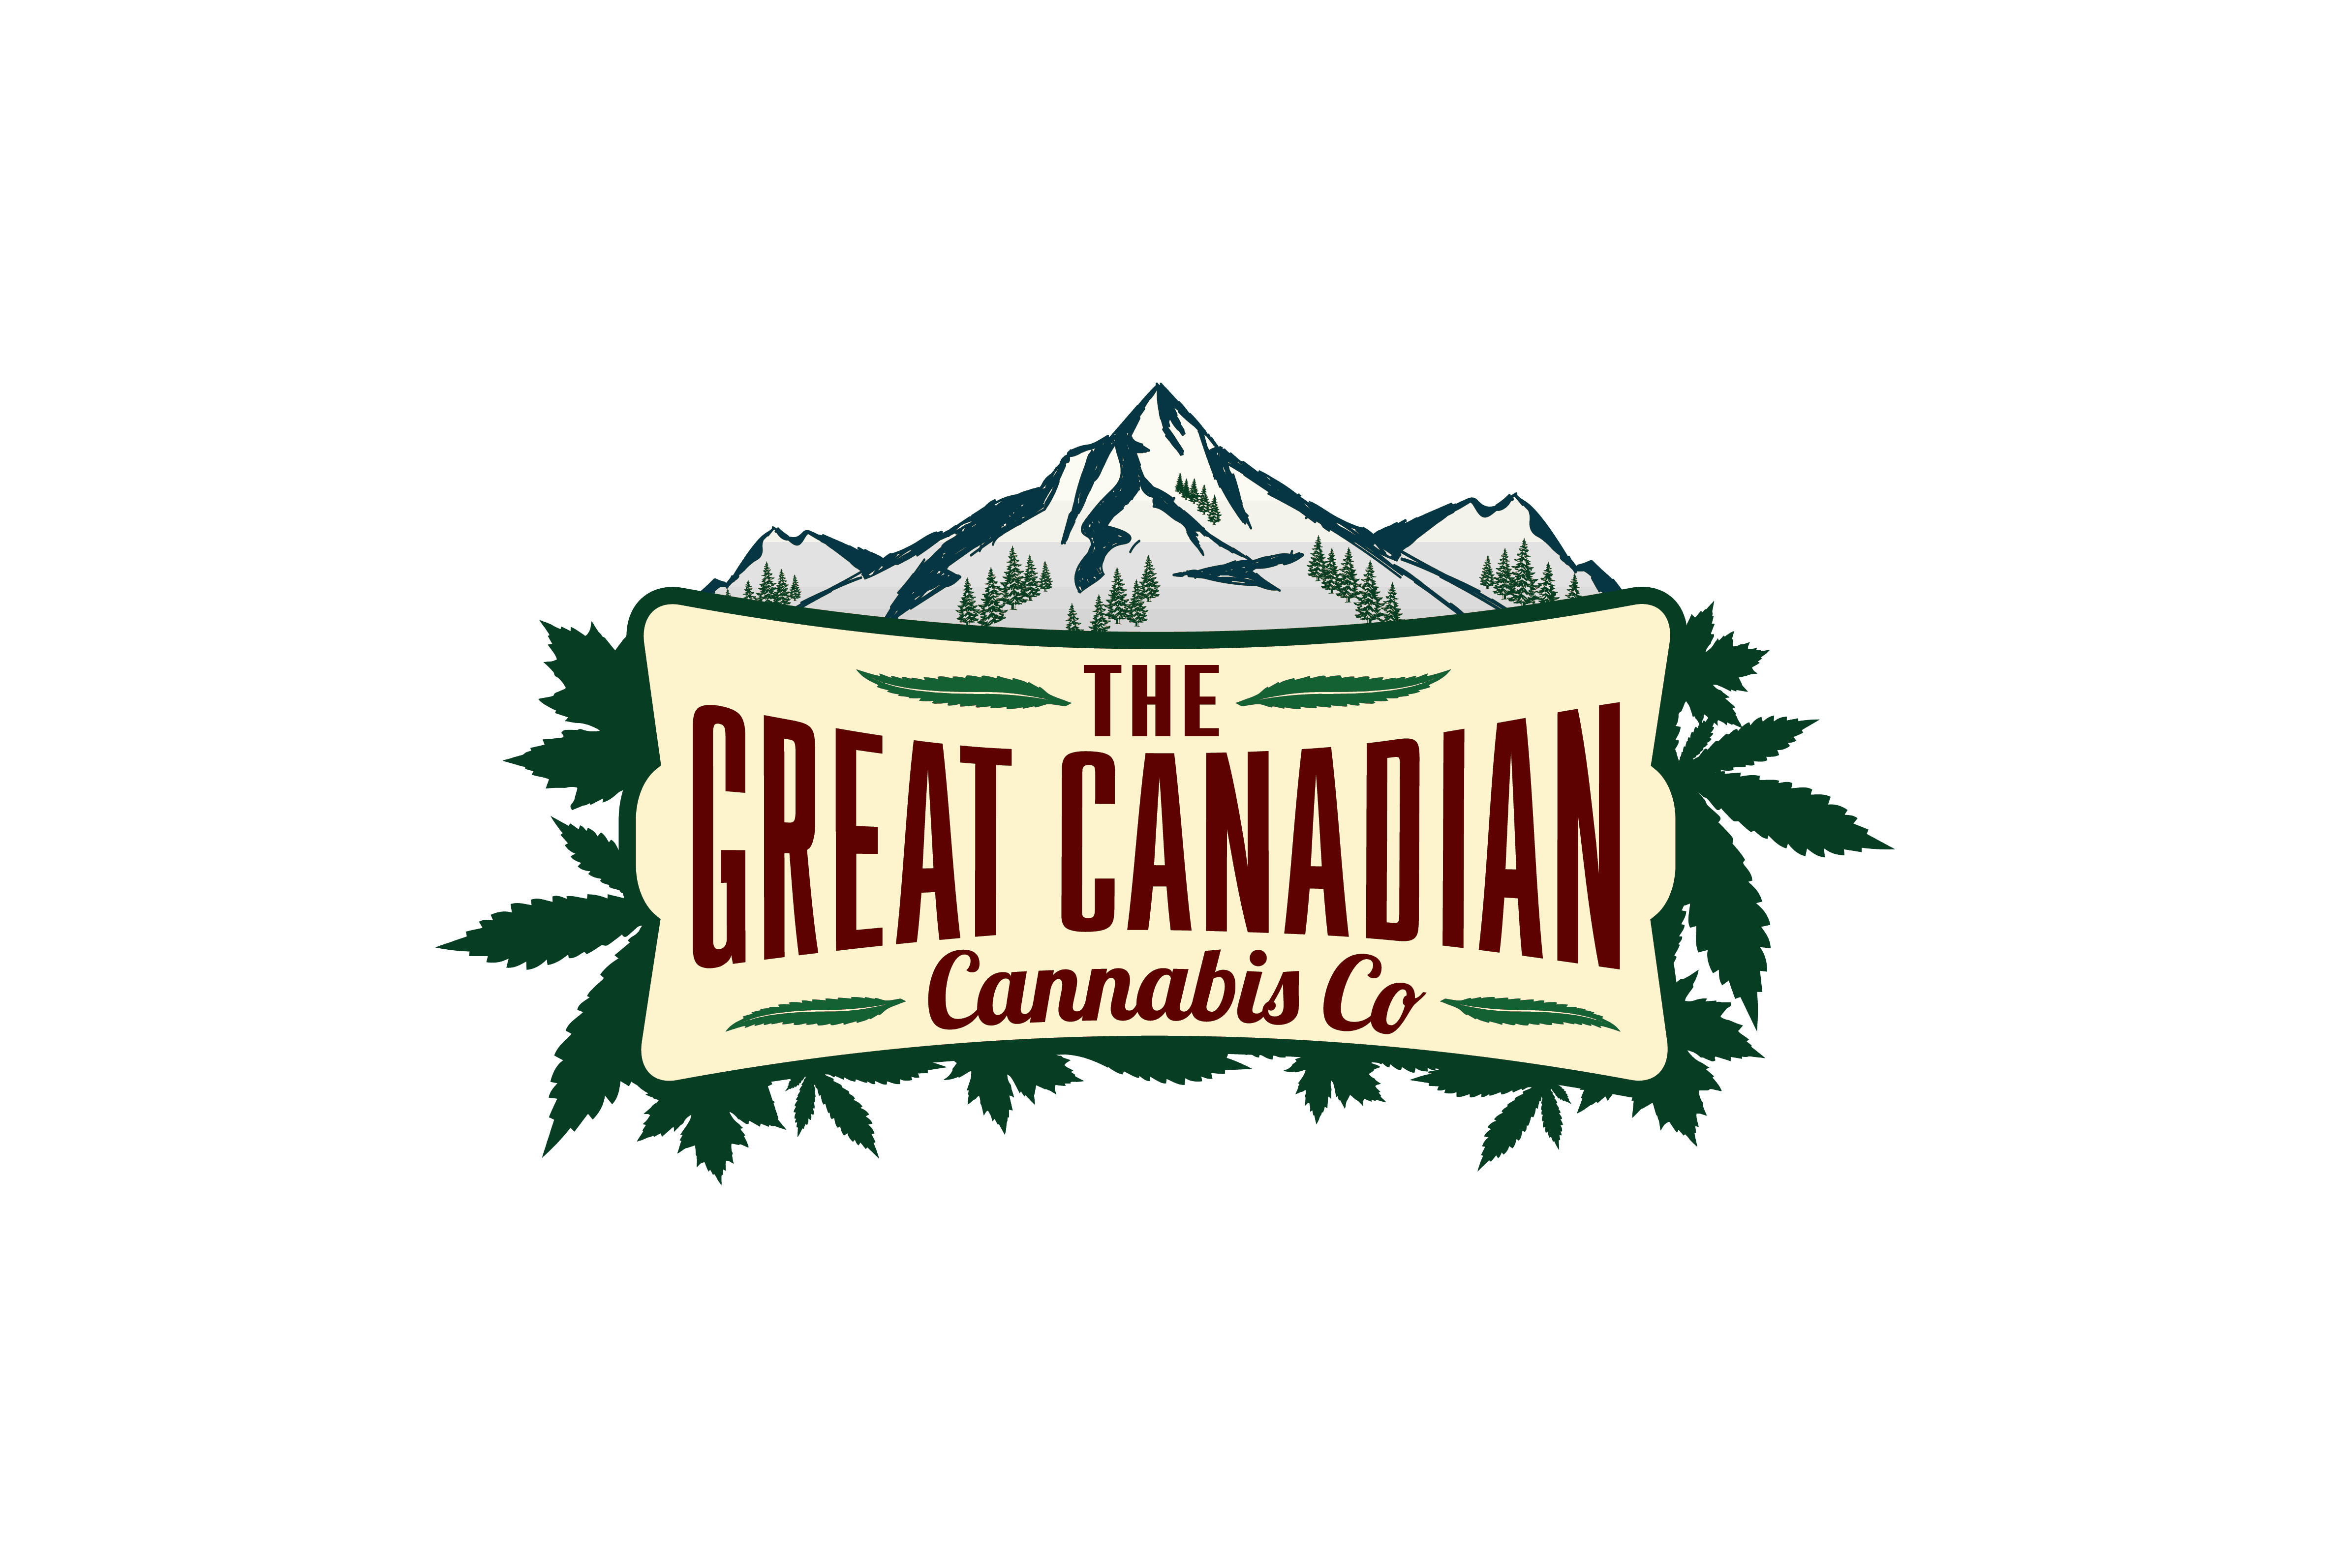 The Great Canadian Cannabis Co